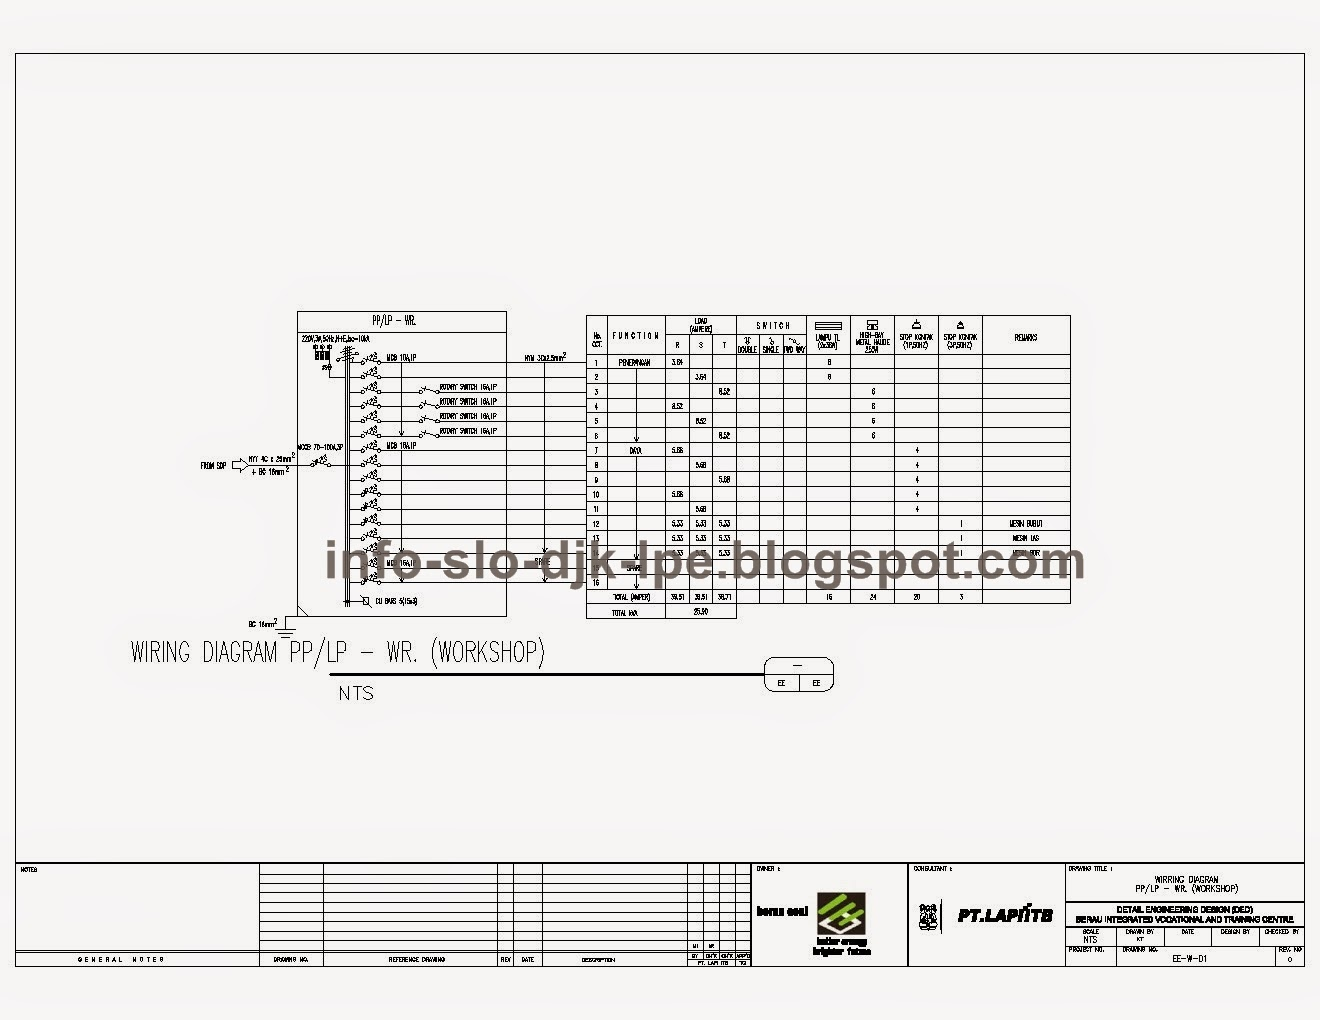 single line diagram listrik single image wiring slo sertifikasi laik operasi gambar single line diagram on single line diagram listrik